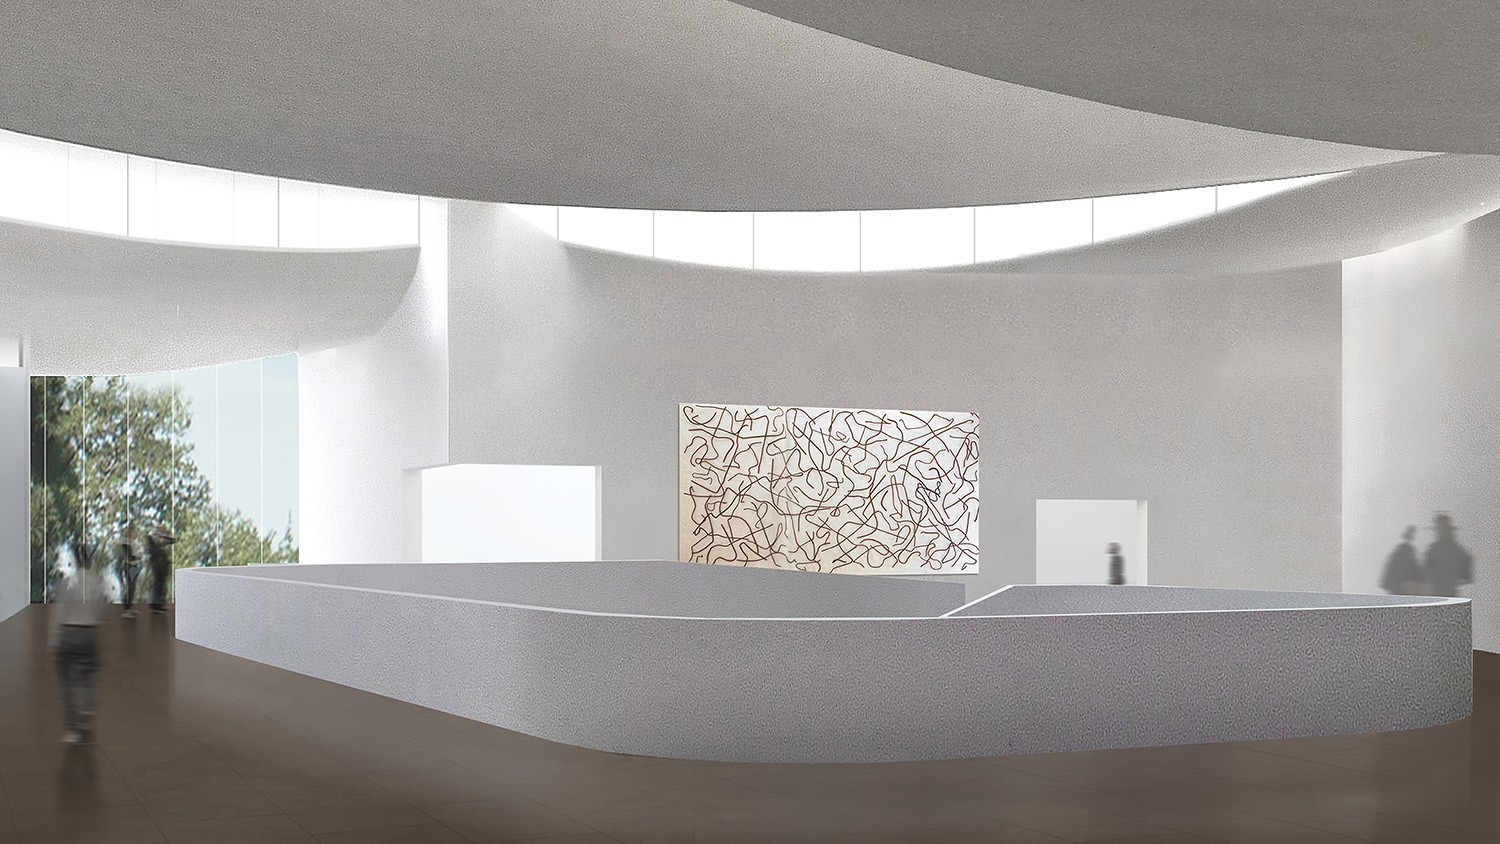 https://s3.us-east-2.amazonaws.com/steven-holl/uploads/projects/project-images/StevenHollArchitects_MFAH_SHA_05_forum-gallery-3rd-floor-01_WH.jpg